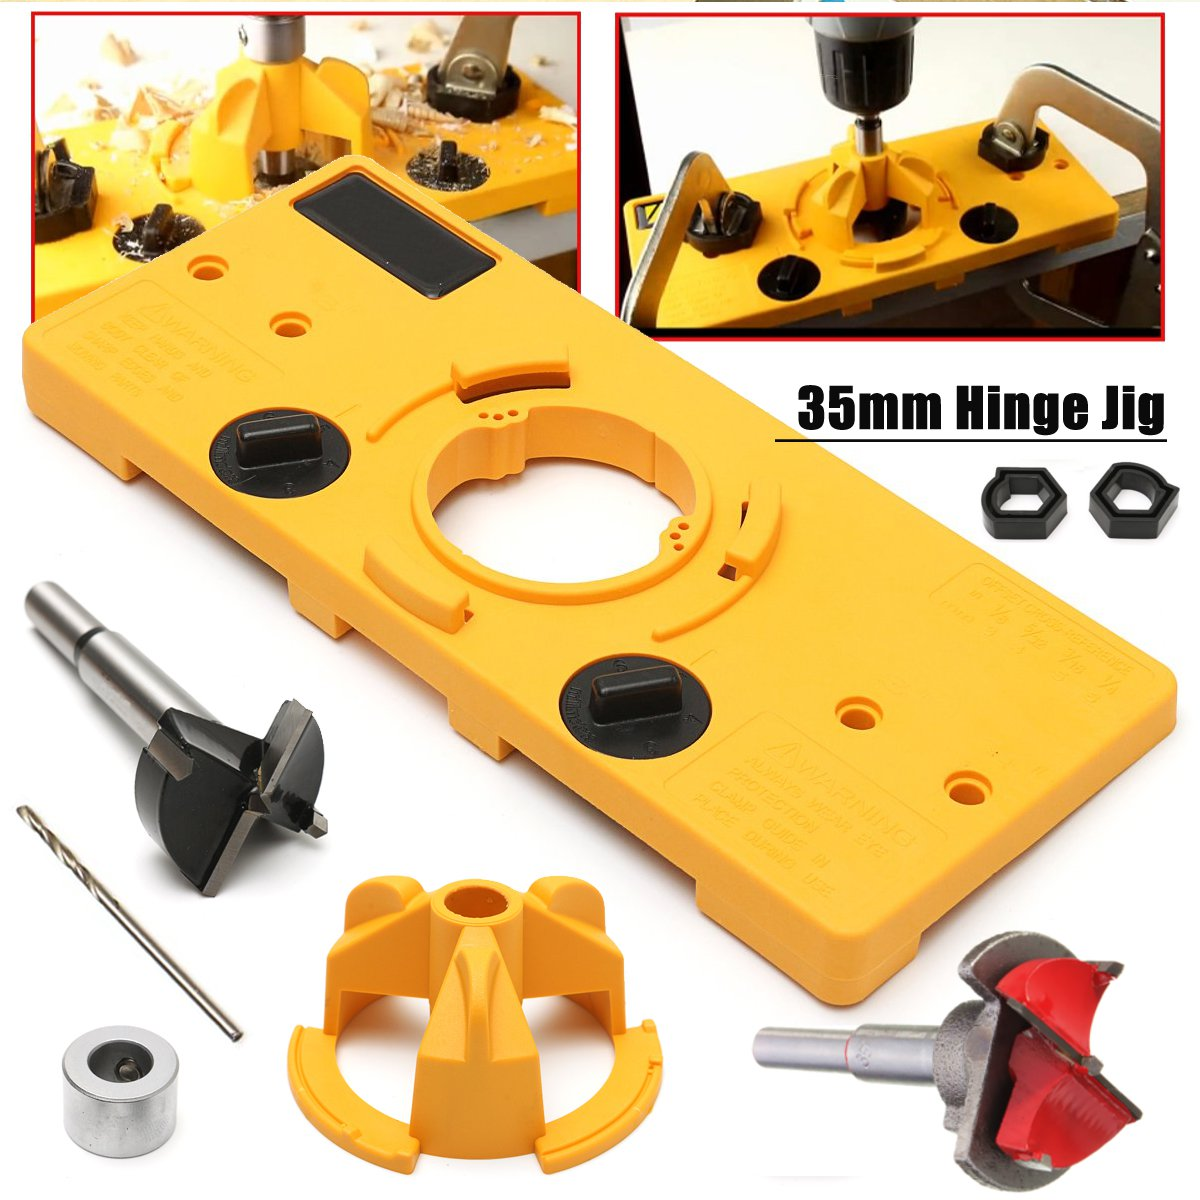 35mm Hinge Drilling Jig +35MM Carbide Tipped Hinge Cutter Boring Drill + 35mm Forstner Bit woodworking tool drill bits 30mm tool hinge cutter boring for woodworking wood drilling forstner bit tungsten carbide carpentry tool rotary